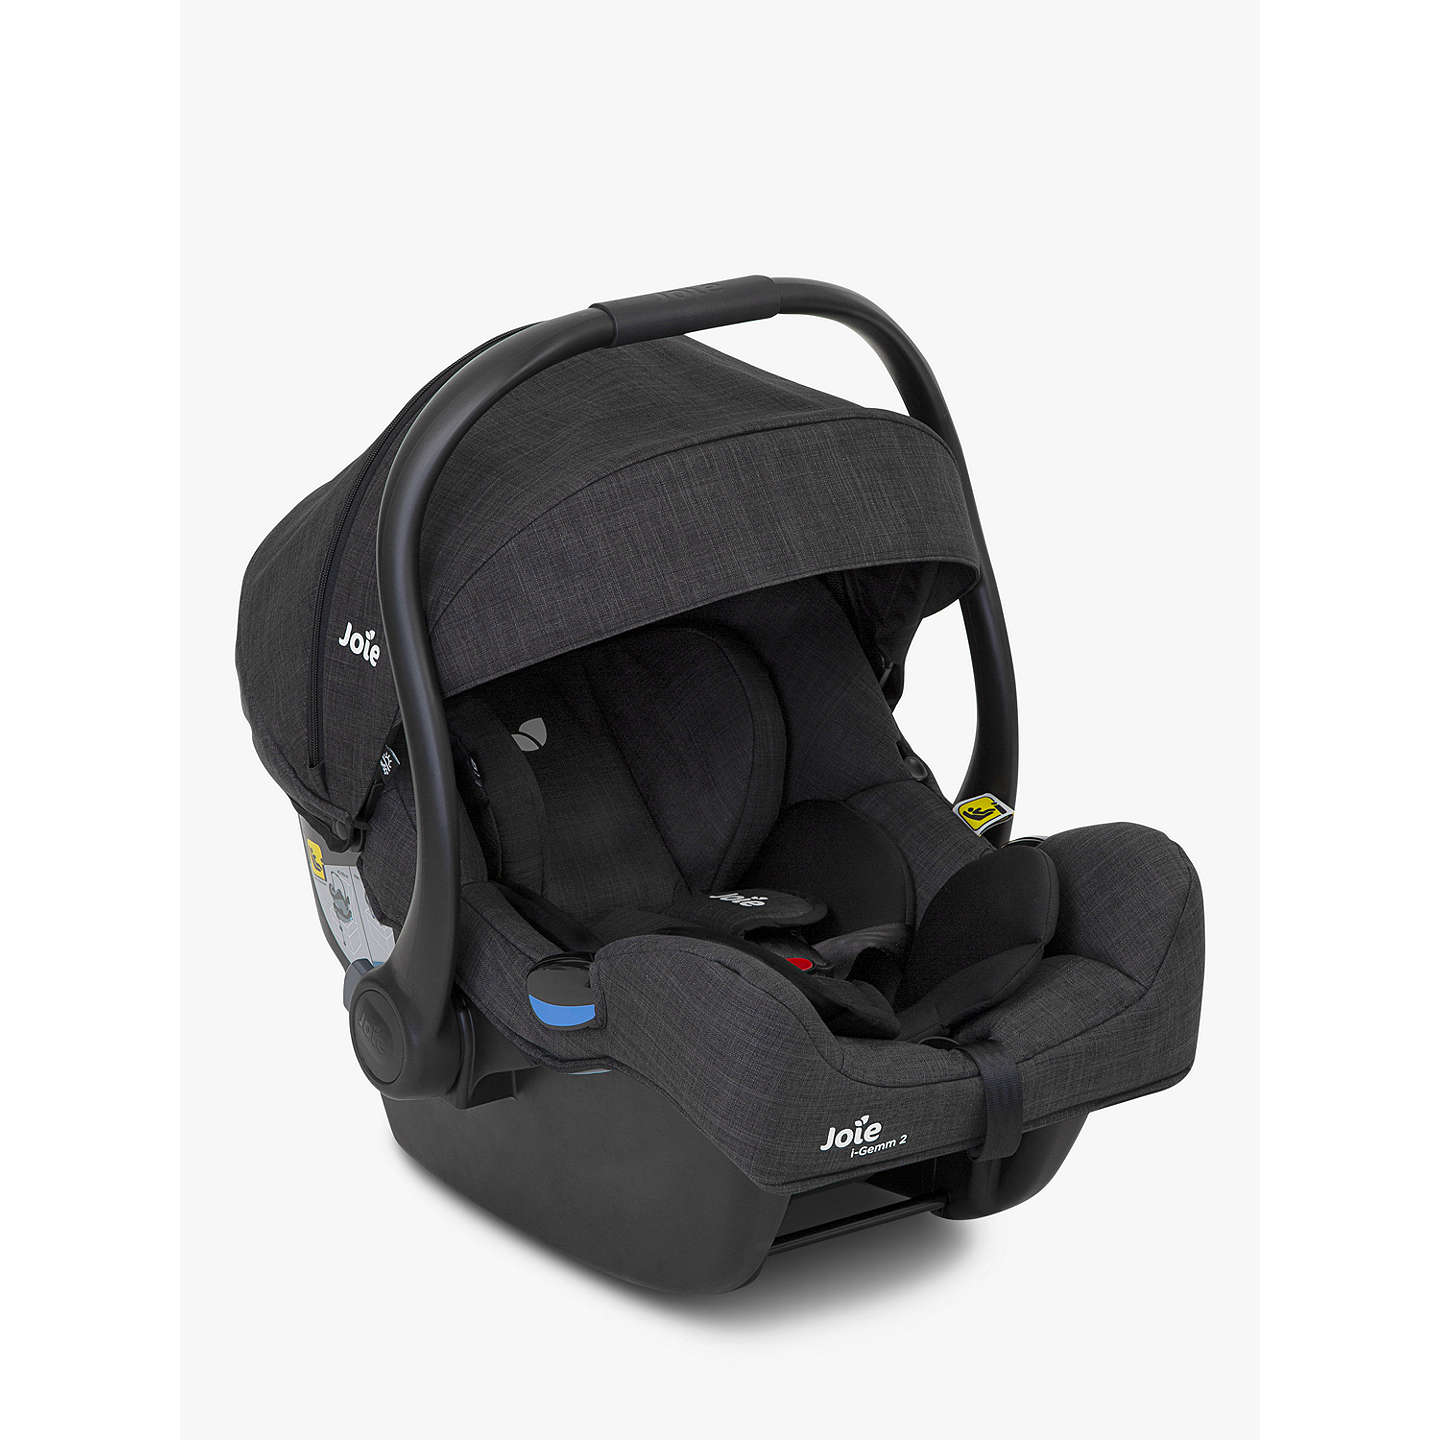 Joie i-Gemm Group 0+ Baby Car Seat, Pavement Grey at John ...